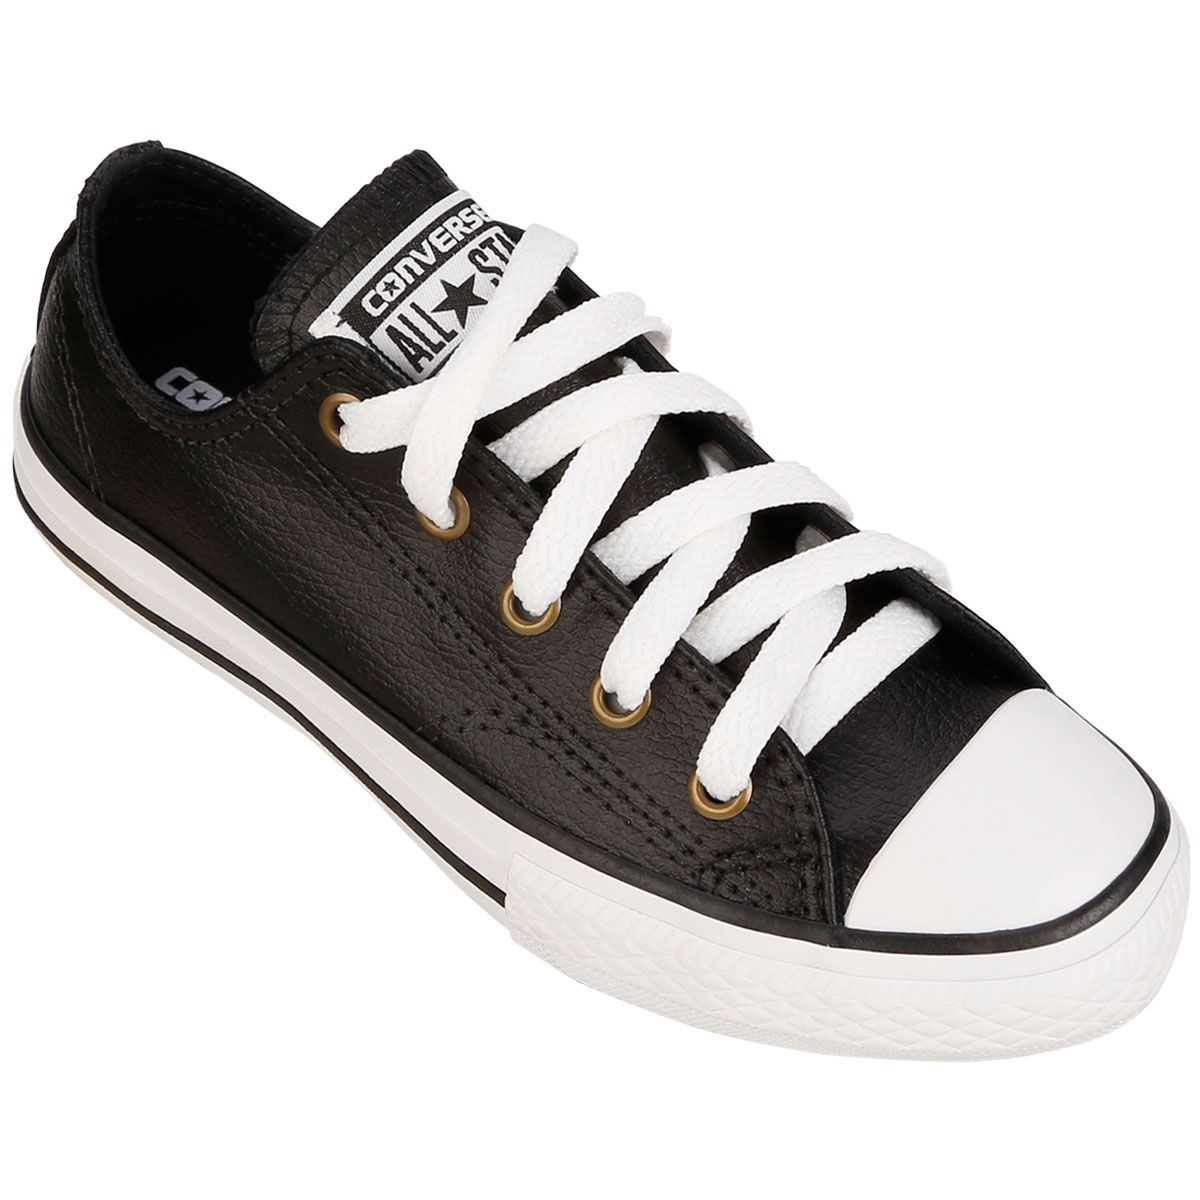 10b0b0ef4 Tênis Converse All Star CT AS Malden OX Infantil Preto